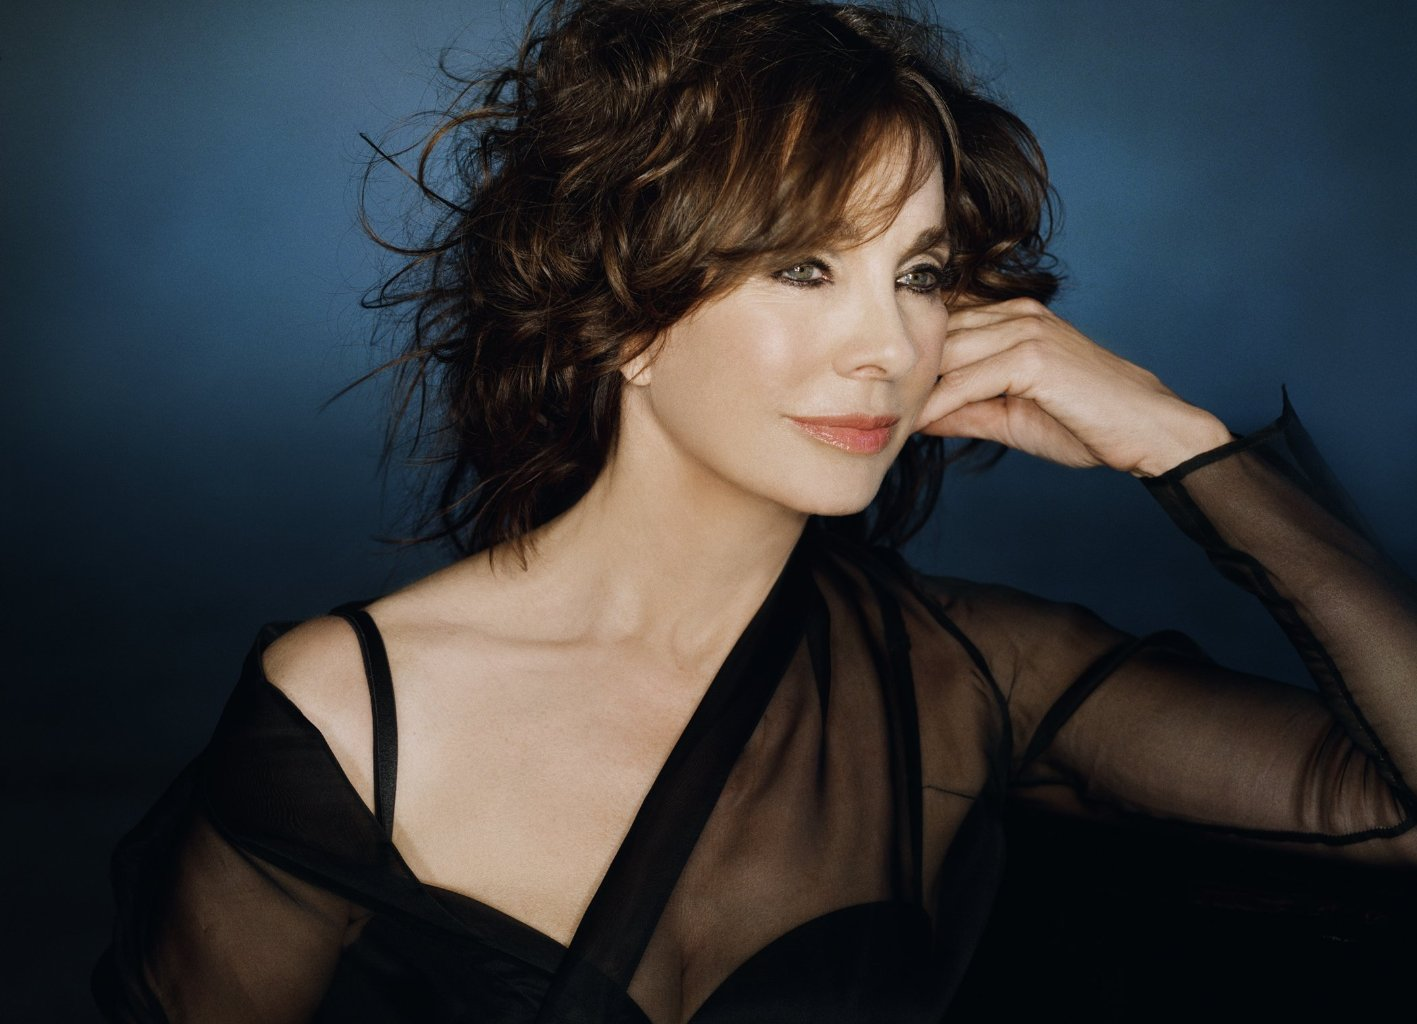 Anne archer hot sexy picture